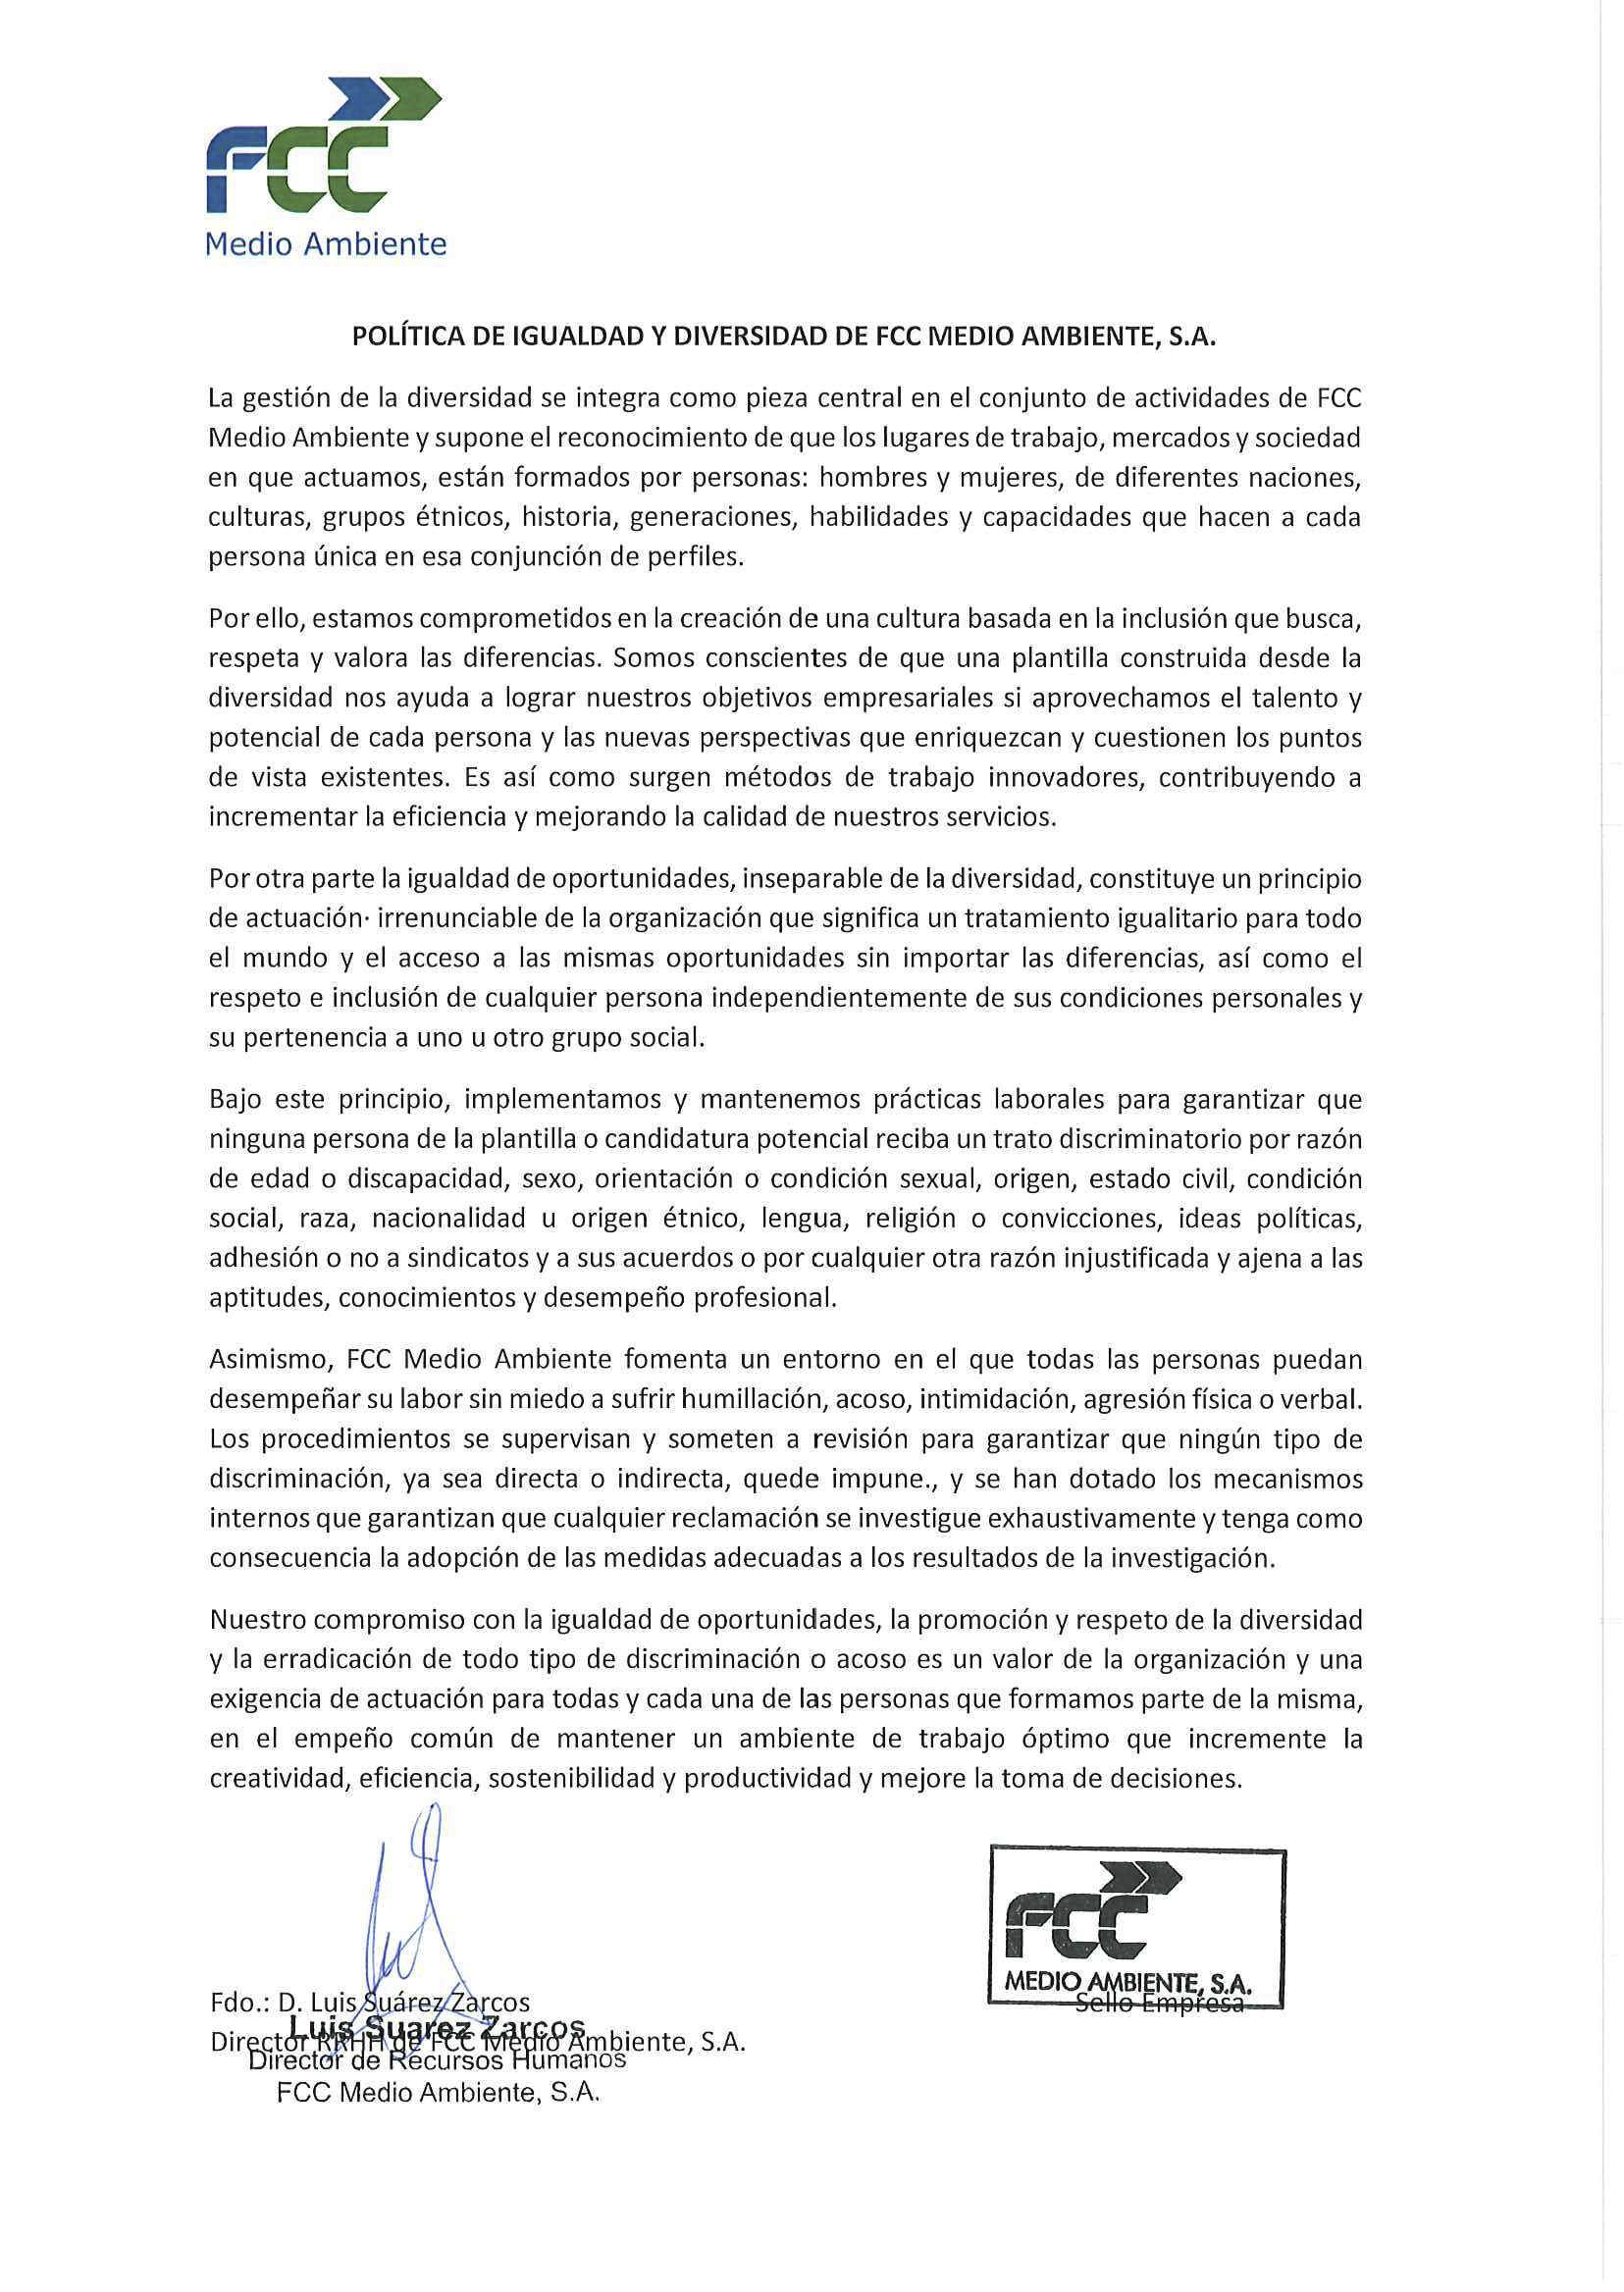 Equality and Diversity Policy of FCC Medio Ambiente